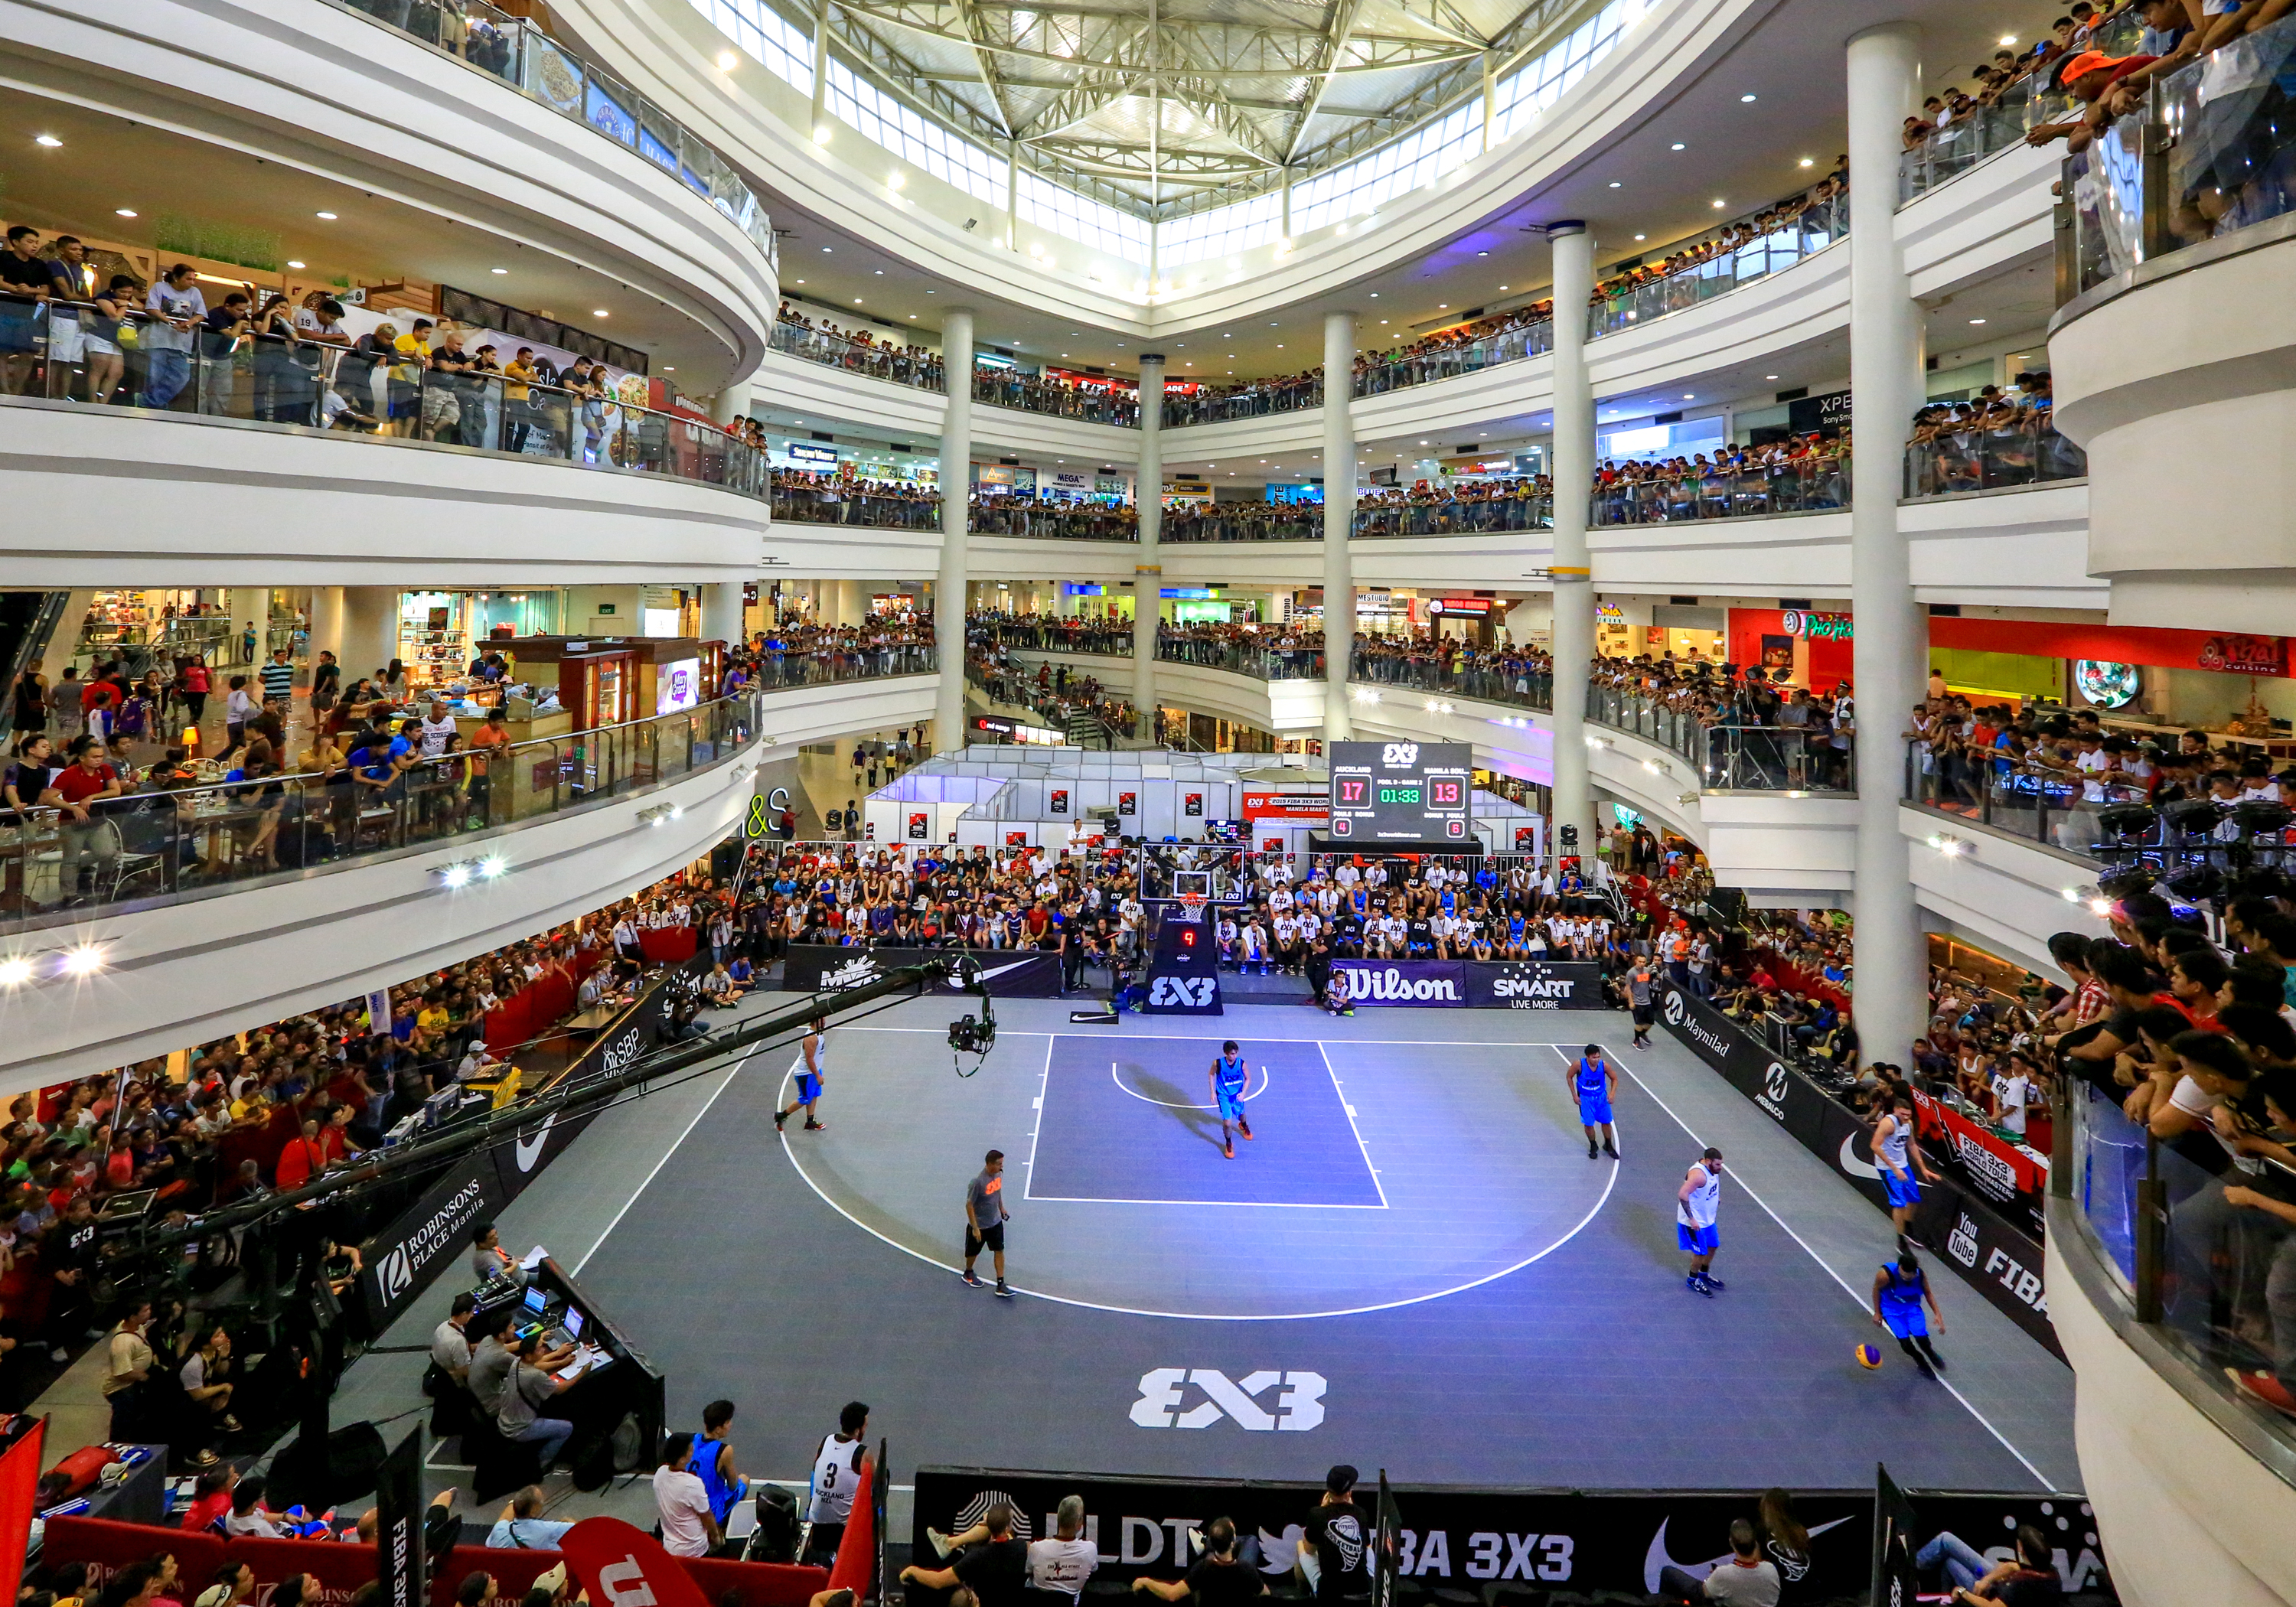 FIBA 3x3 World Tour in Manila